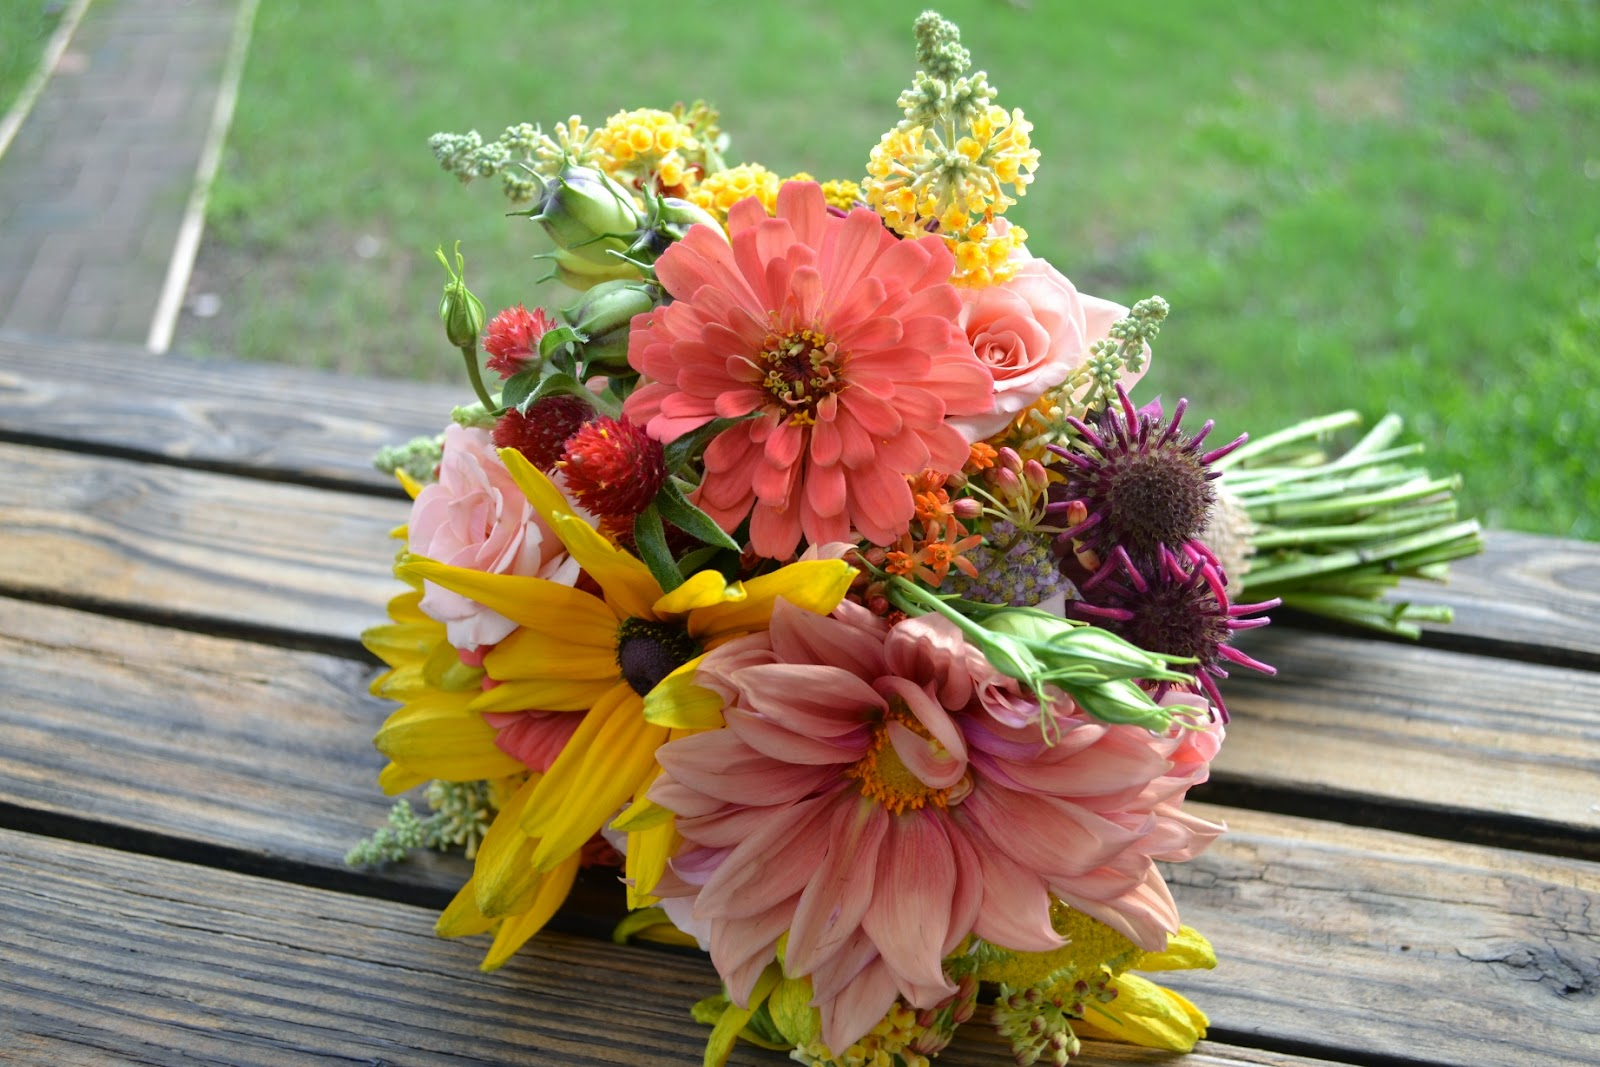 Wedding Flowers From Springwell Peach Dahlias And Zinnias With Black Eyed Susans For Summer